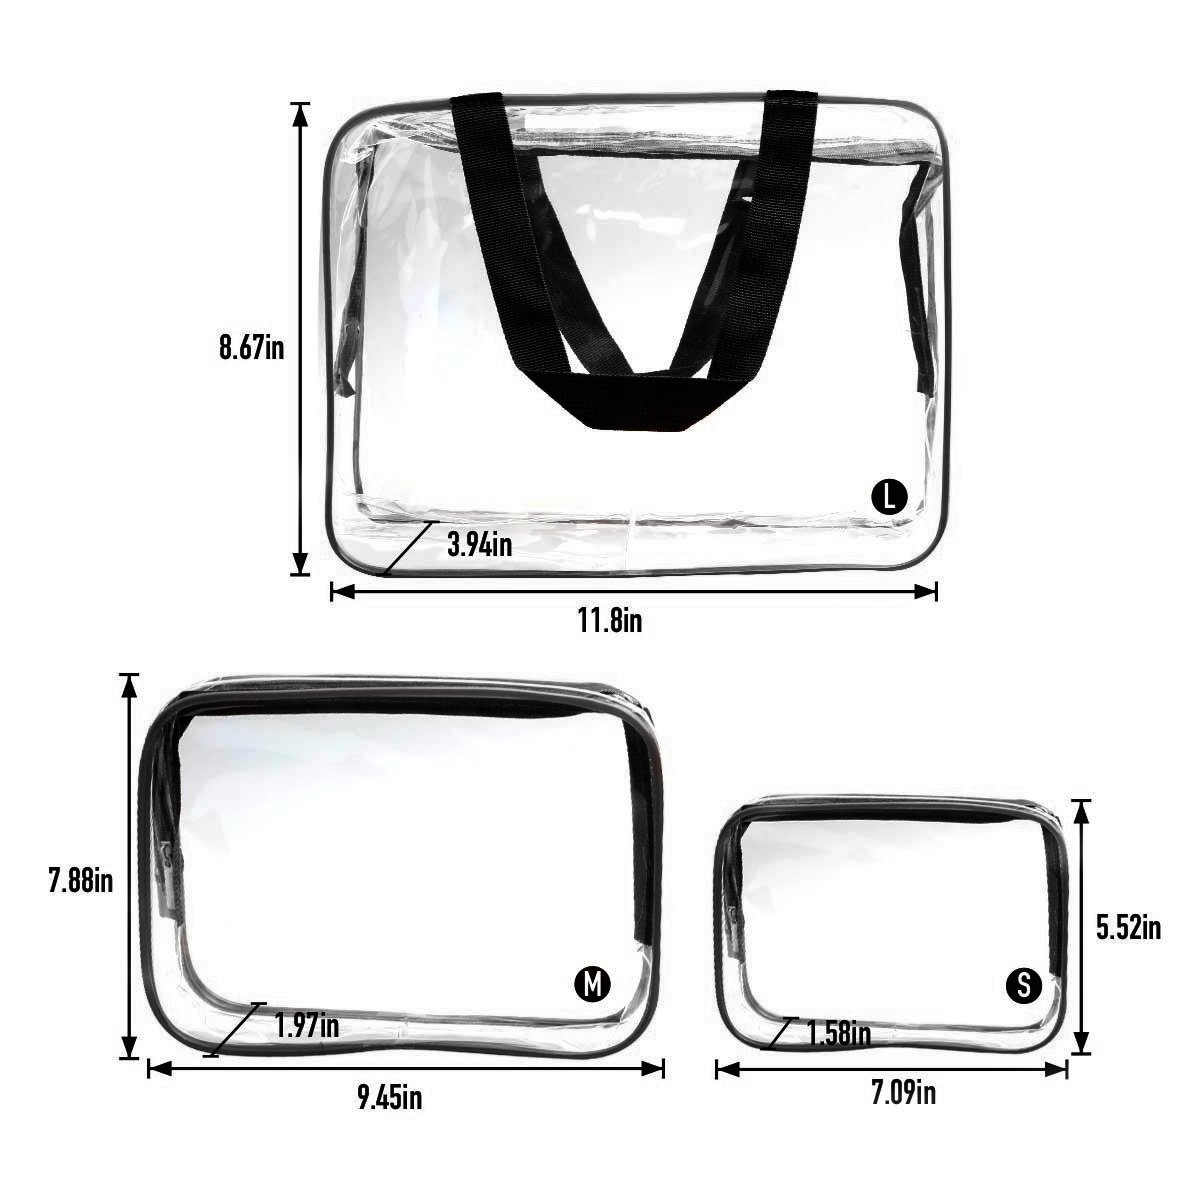 ESHOW 3 Set Clear Packing Cubes, PVC Waterproof Multi-function Hand Pouch Tote Bag Makeup Bag with Zipper and Travel to Buggy Bag for Toiletries Cosmetic and Bathroom Accessories (black) by WIFUME (Image #2)